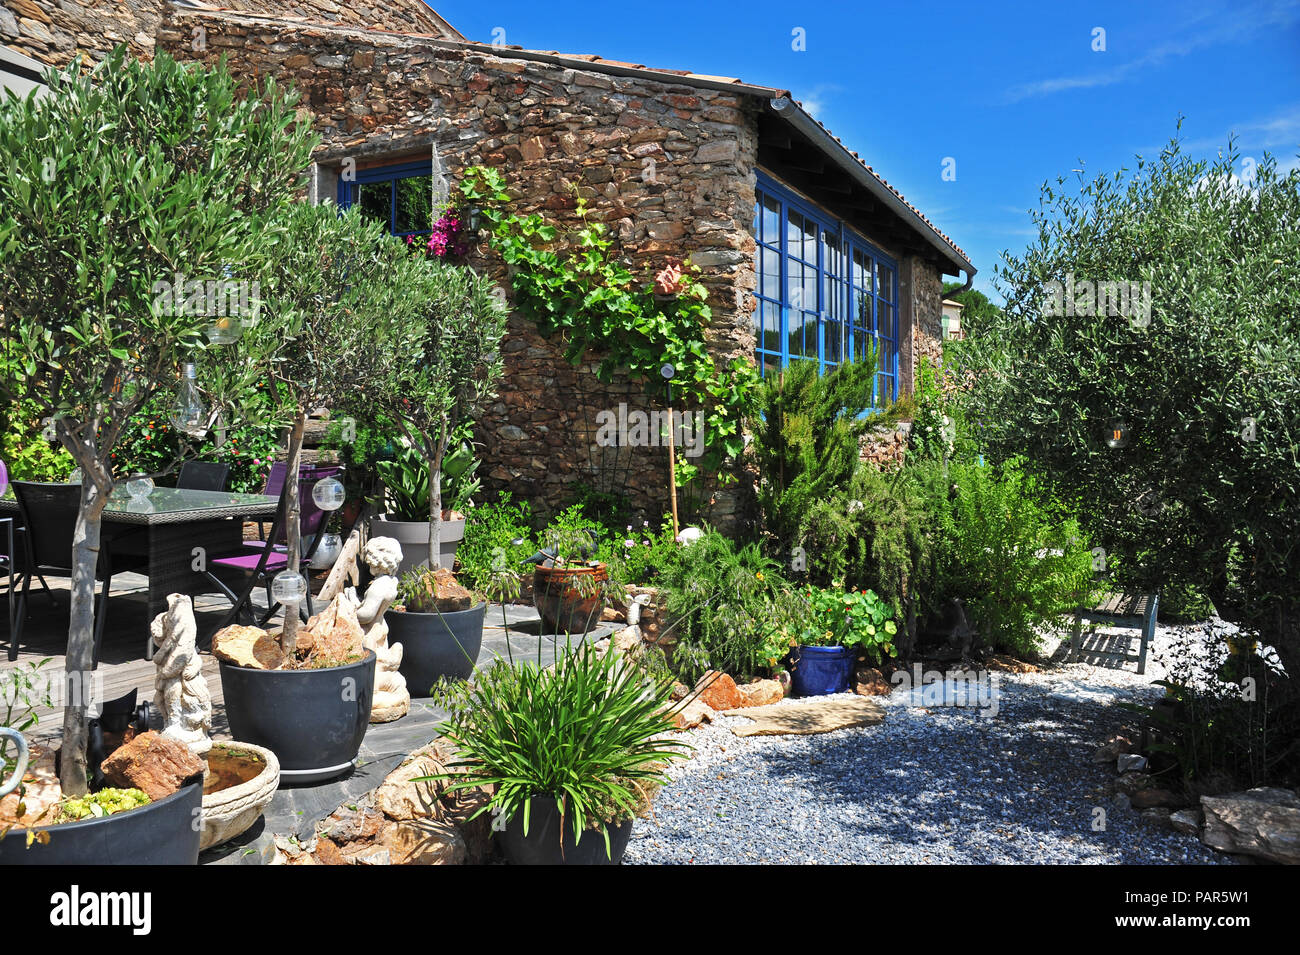 Wonderful courtyard garden in the South of France. Property released - Stock Image